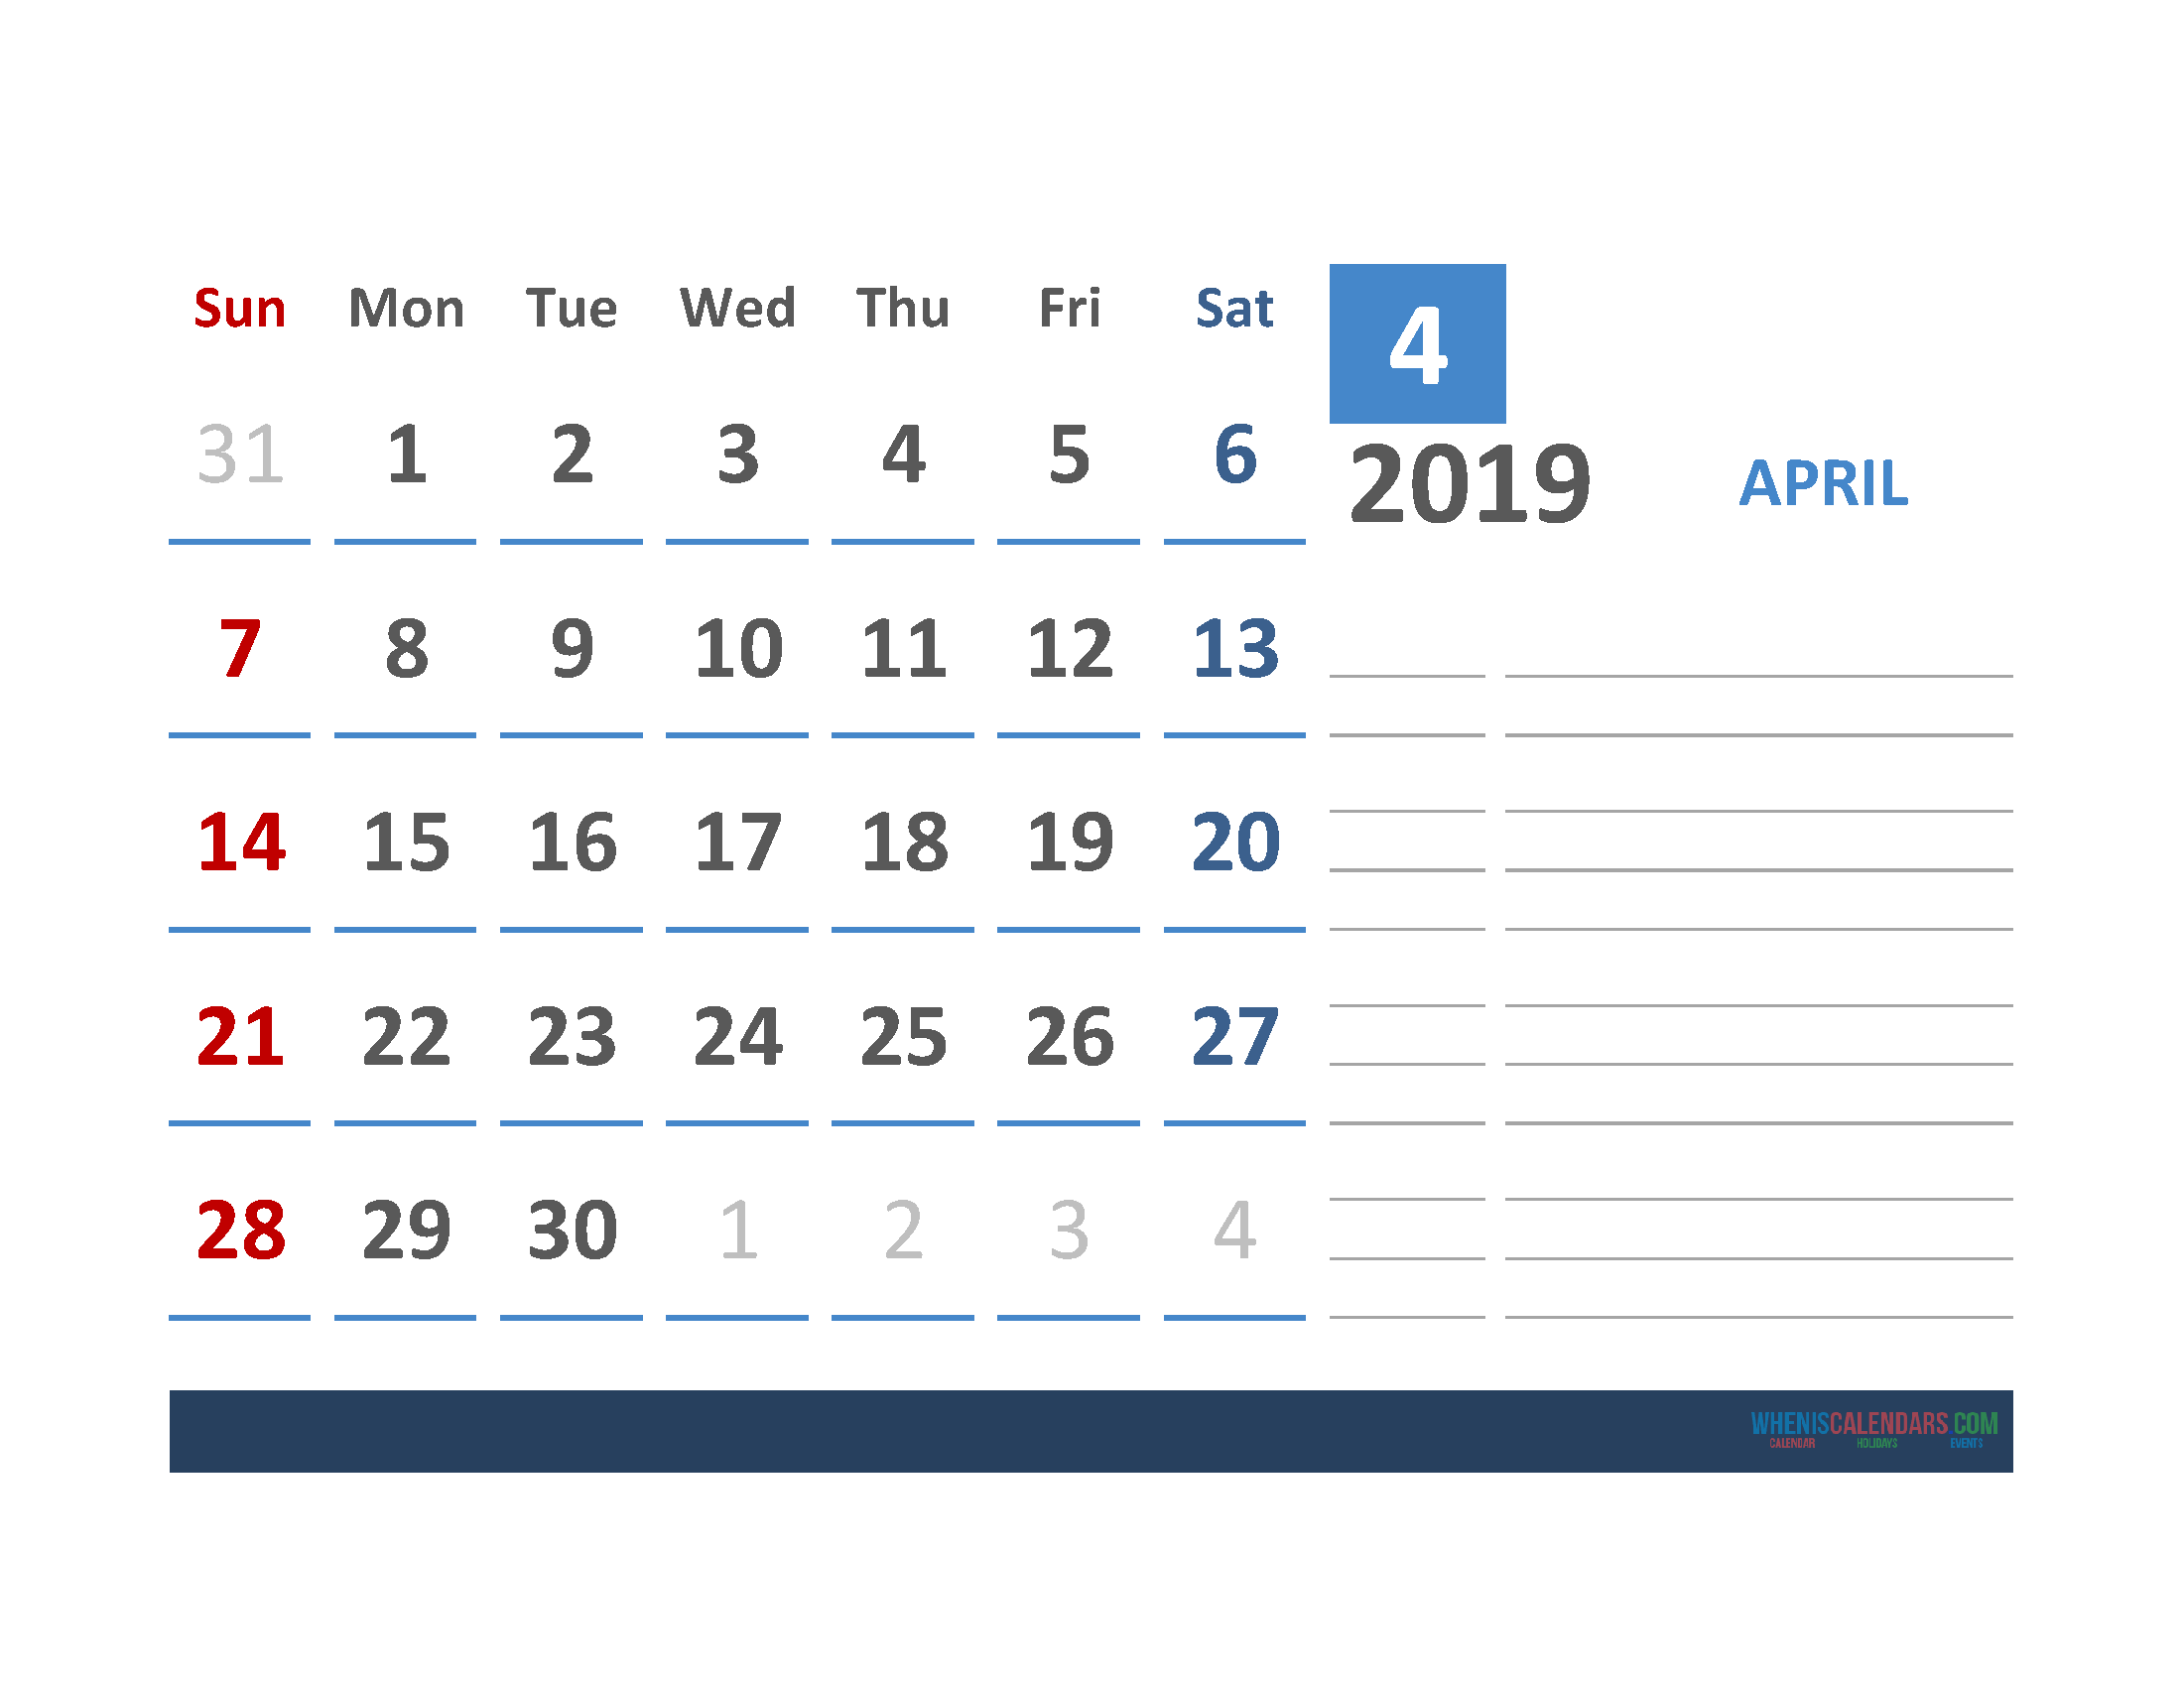 Free April 2019 Calendar Template With Space for Notes